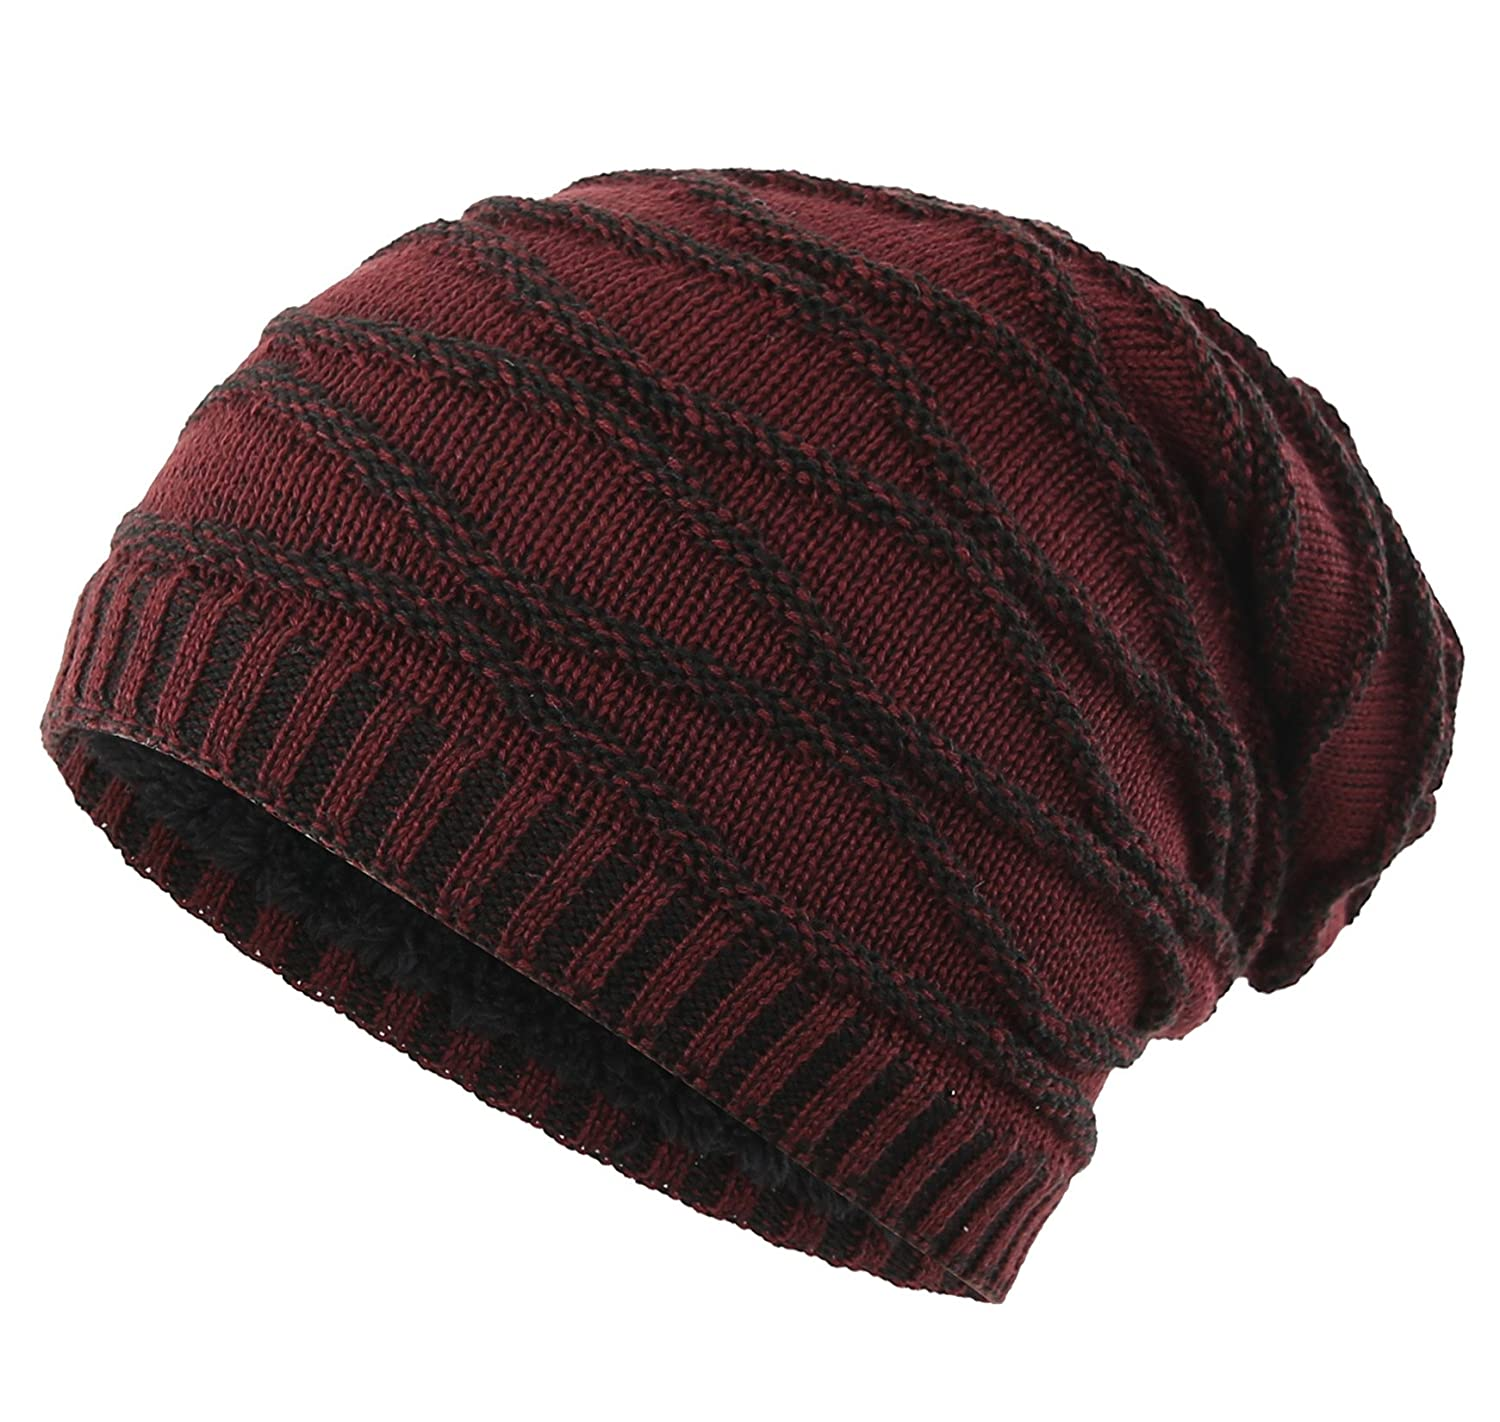 Connectyle Men s Thick Slouchy Cable Knit Beanie Hat Daily Long Skull Cap  Warm Winter Hats Watch Cap at Amazon Men s Clothing store  165113f2573